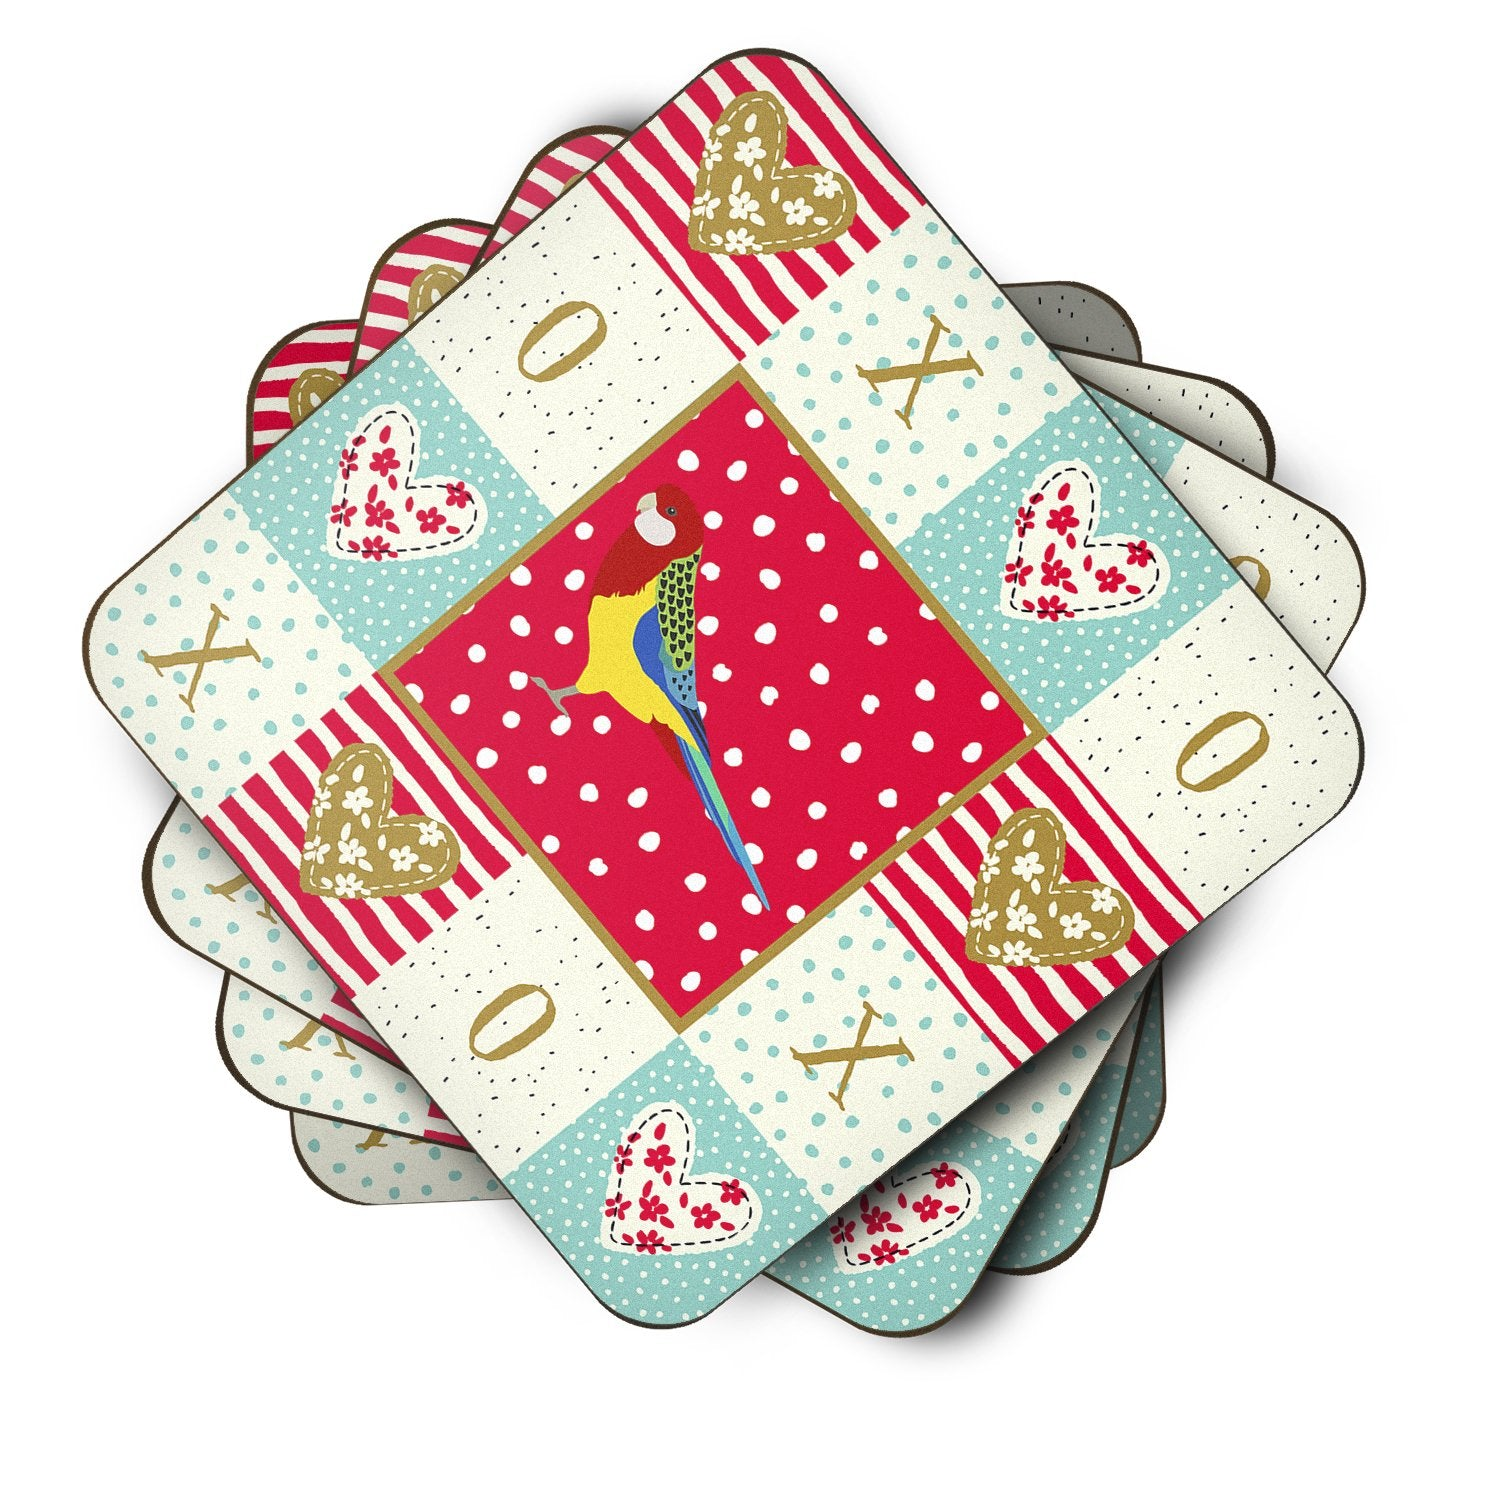 Set of 4 Rosella Love Foam Coasters Set of 4 CK5526FC by Caroline's Treasures